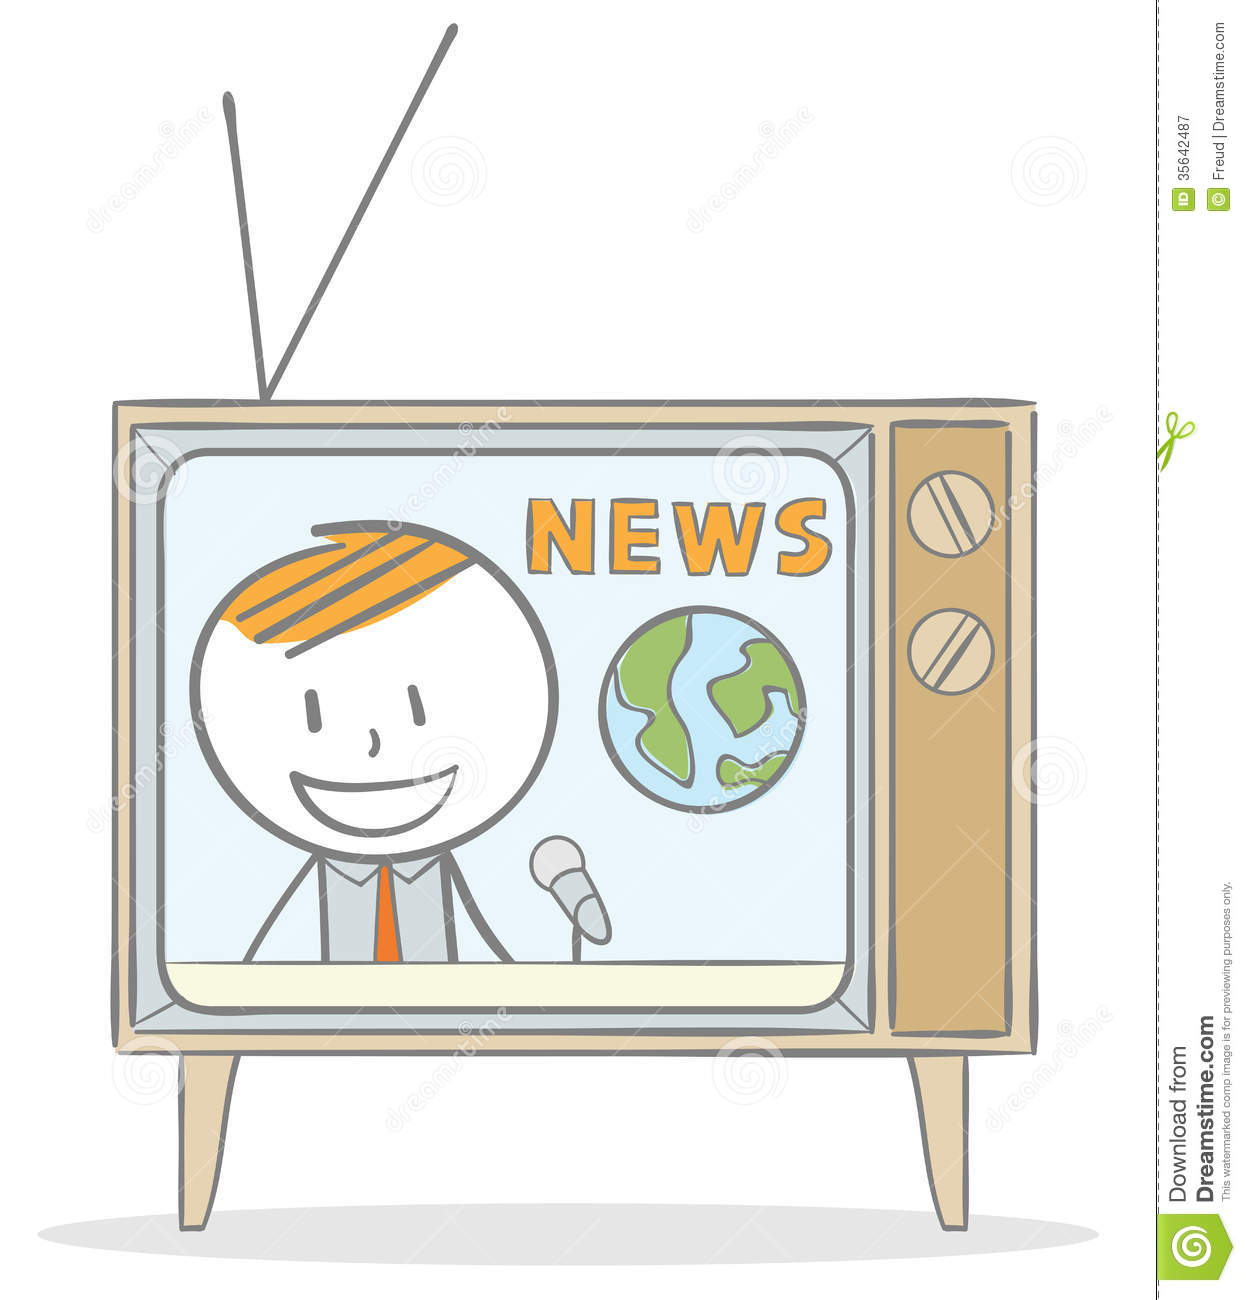 Announcement clipart programme. News panda free images